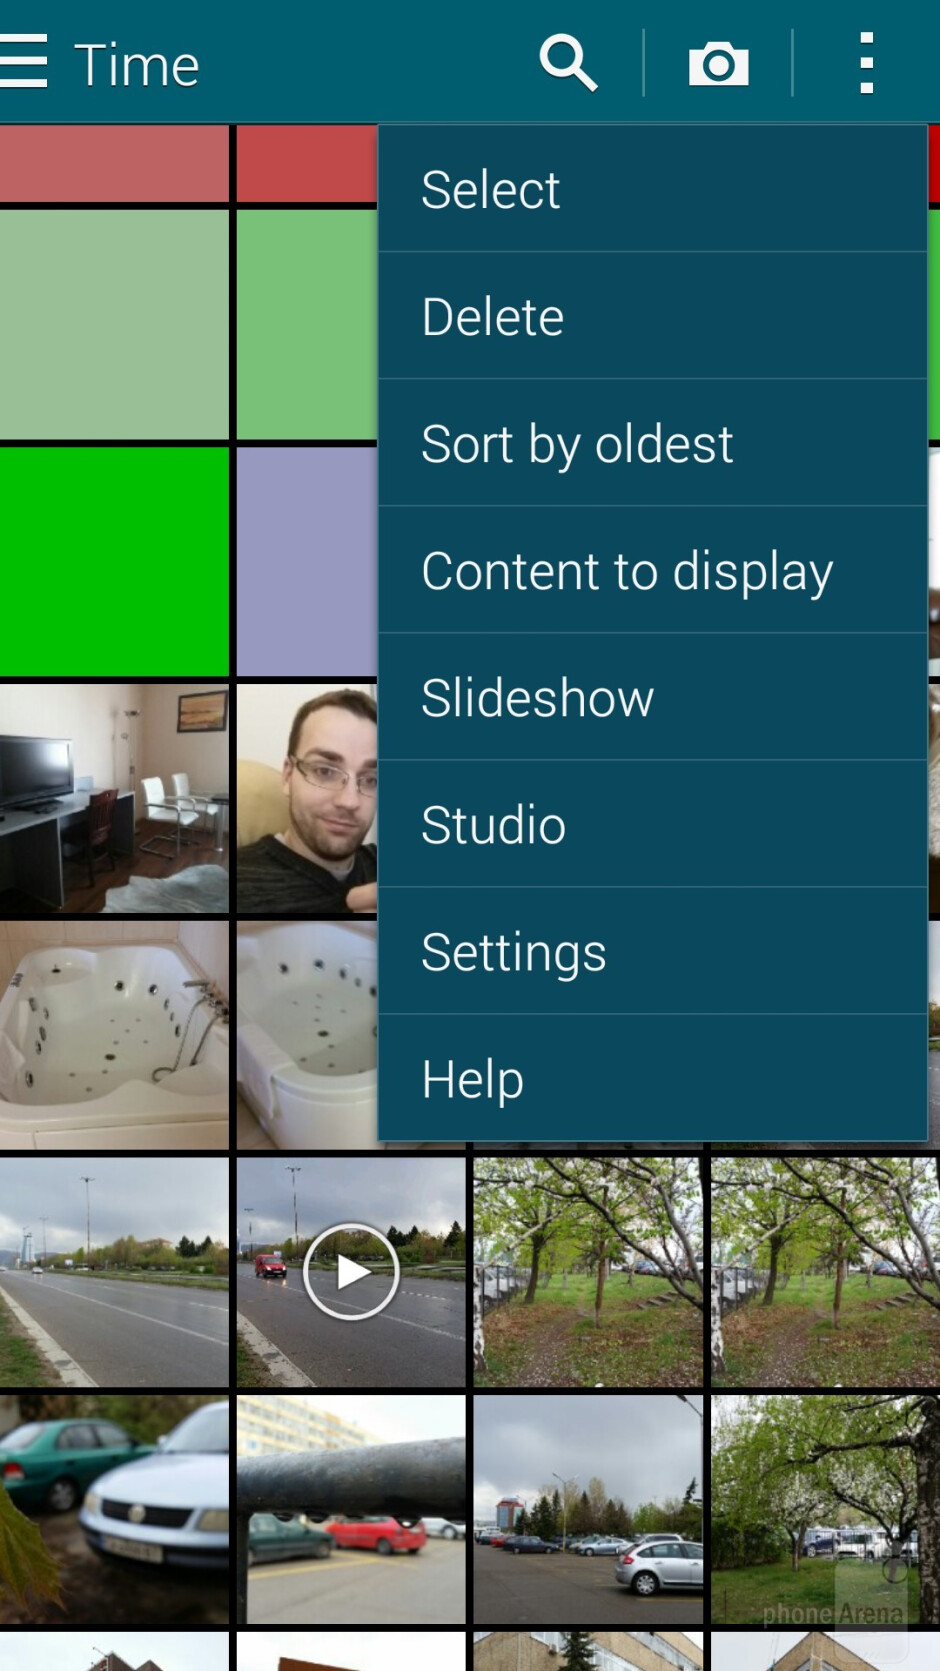 The multimedia experience on the Samsung Galaxy S5 - LG G3 vs Samsung Galaxy S5